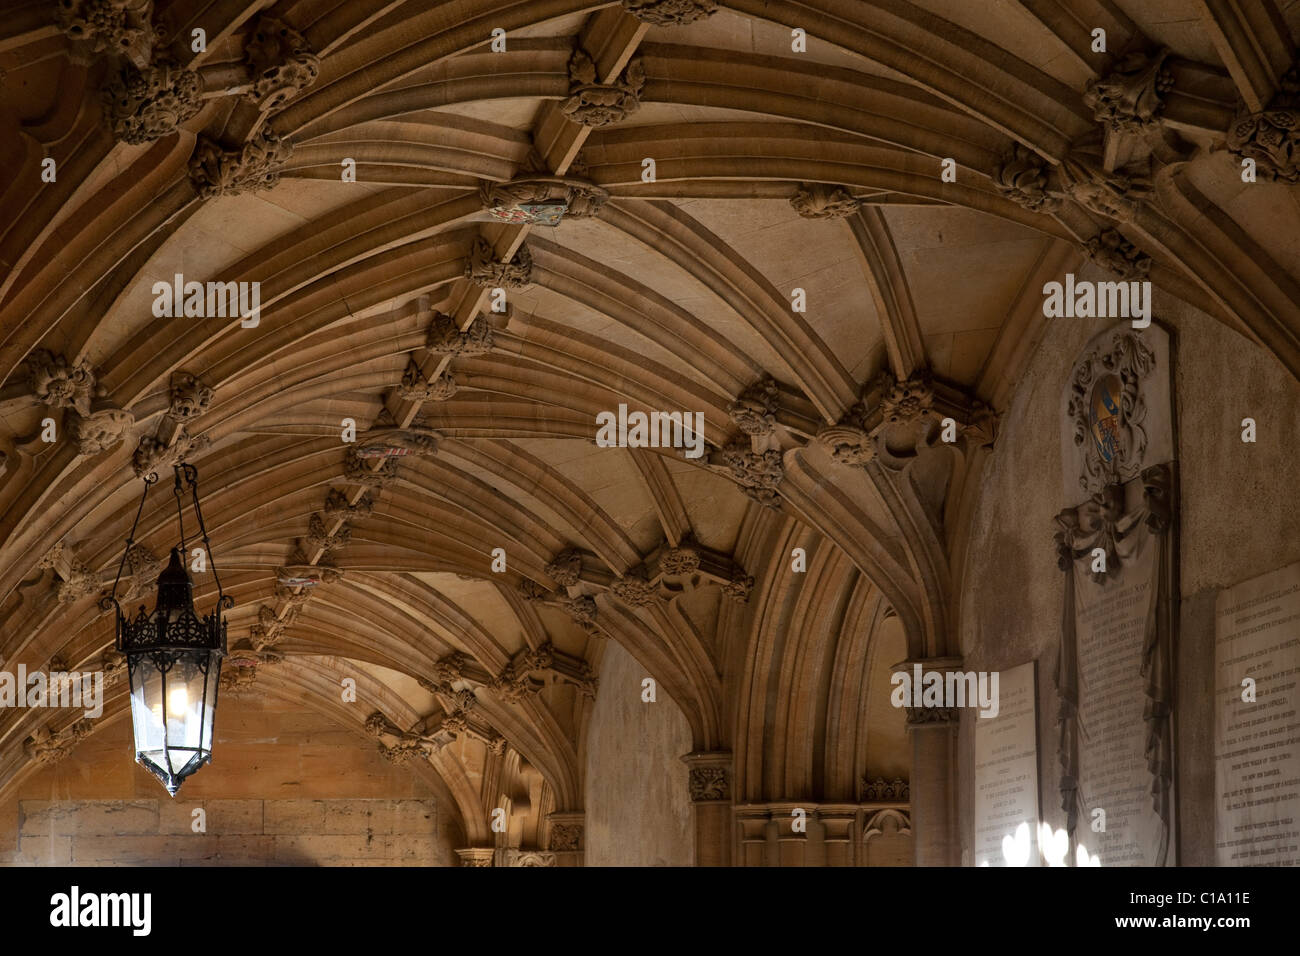 Rib-vault ceiling of entrance to the Great Hall of Christ Church College of the Oxford University, Oxfordshire, - Stock Image